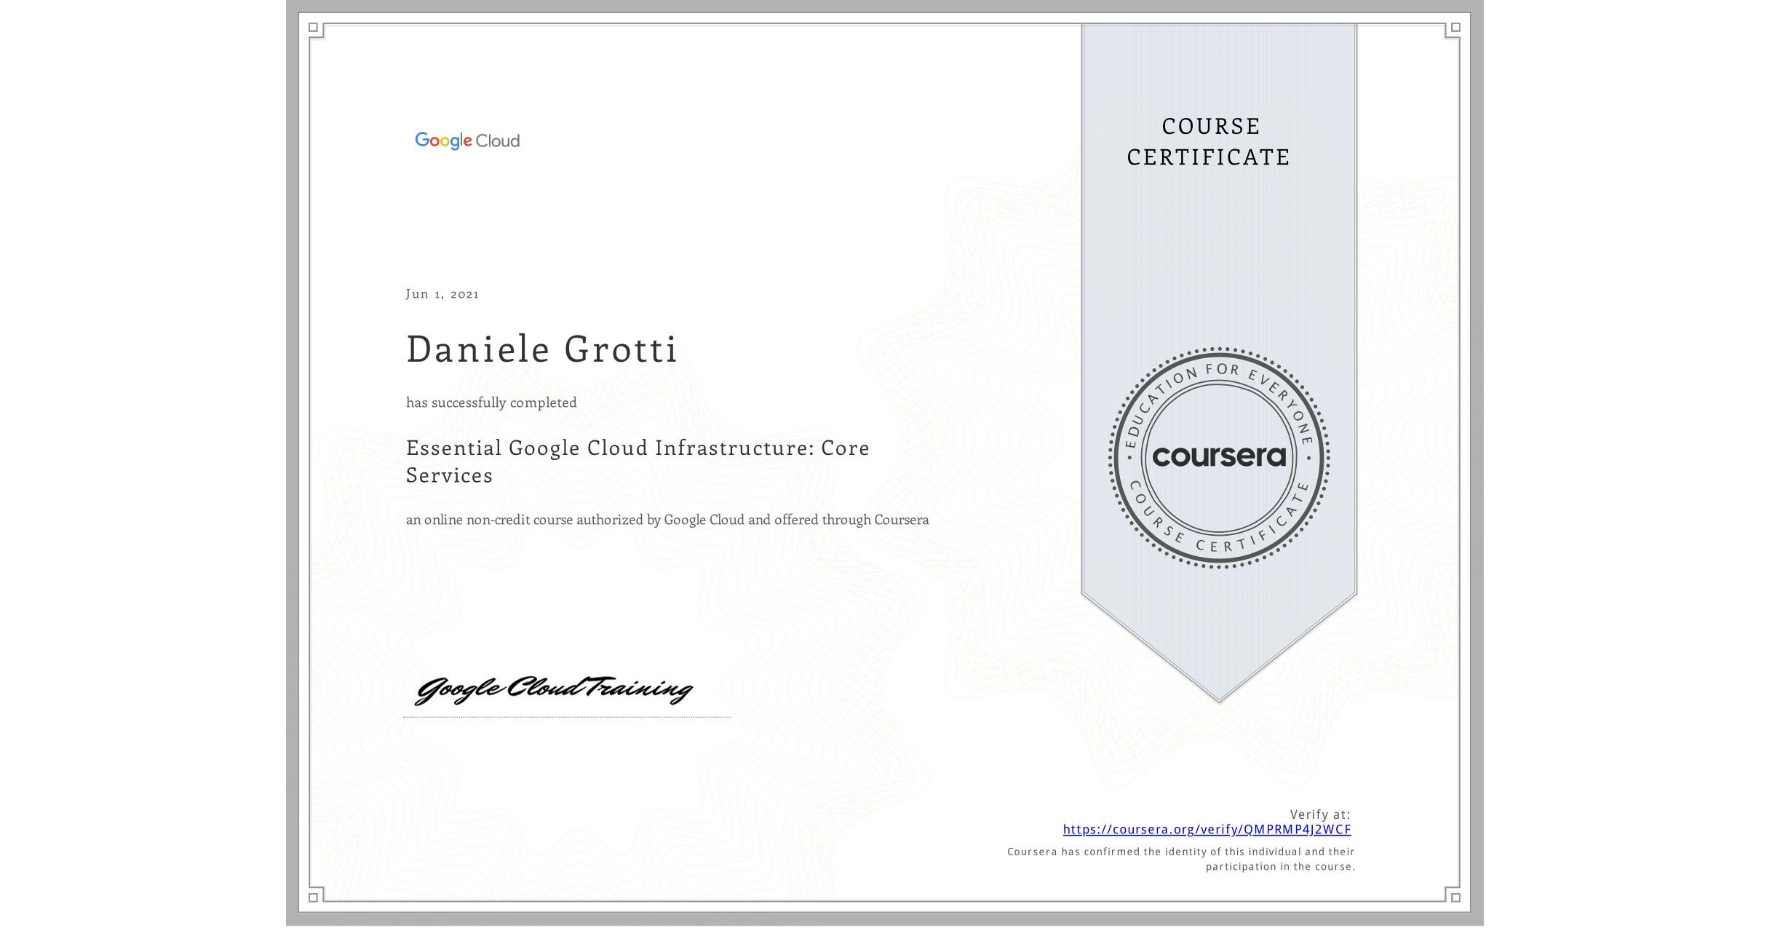 View certificate for Daniele Grotti, Essential Google Cloud Infrastructure: Core Services, an online non-credit course authorized by Google Cloud and offered through Coursera